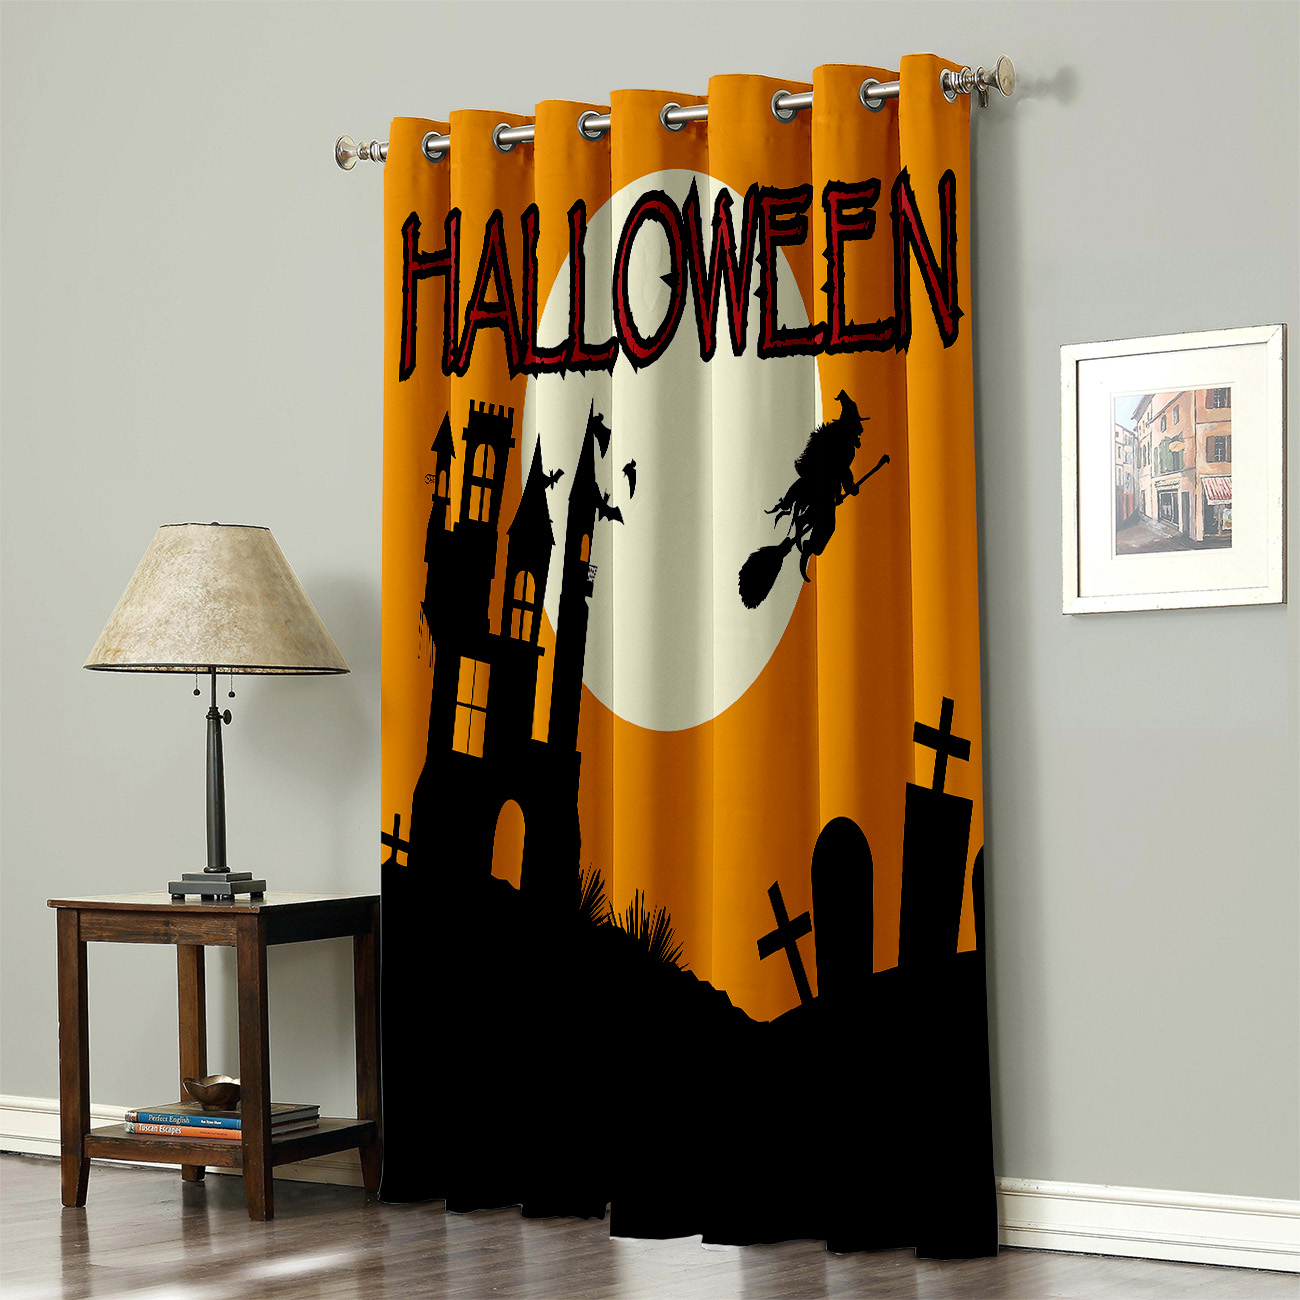 Witch/'S Castle Halloween Style Window Treatments Curtains Valance Room Curtains Large Window Curtain Lights Curtains Indoor Fabr